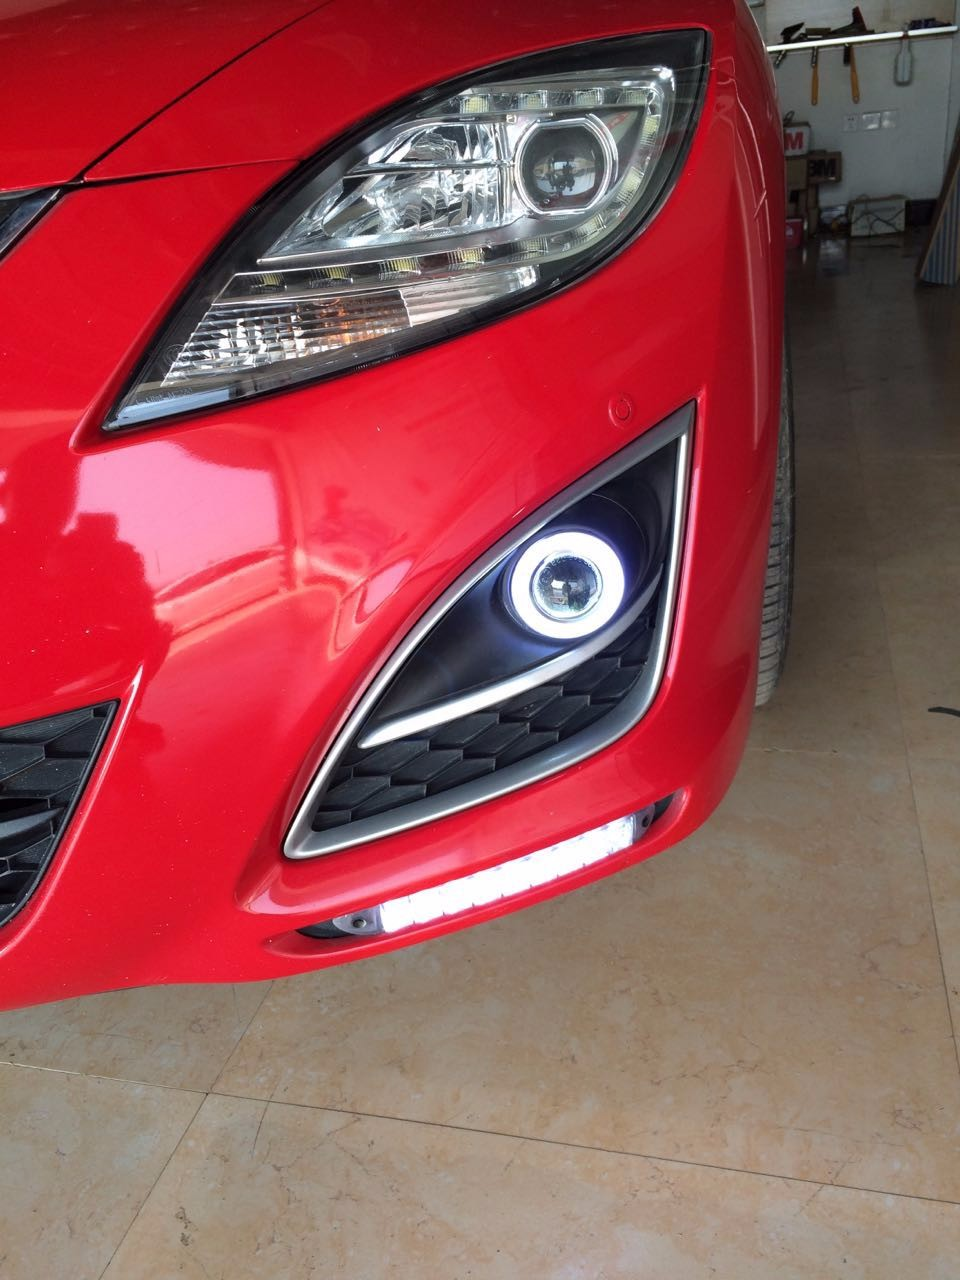 RQXR <font><b>LED</b></font> daytime running <font><b>light</b></font> for <font><b>Mazda</b></font> <font><b>6</b></font> Atenza 2010-2013 (GH) 2 generation with yellow turn signal image